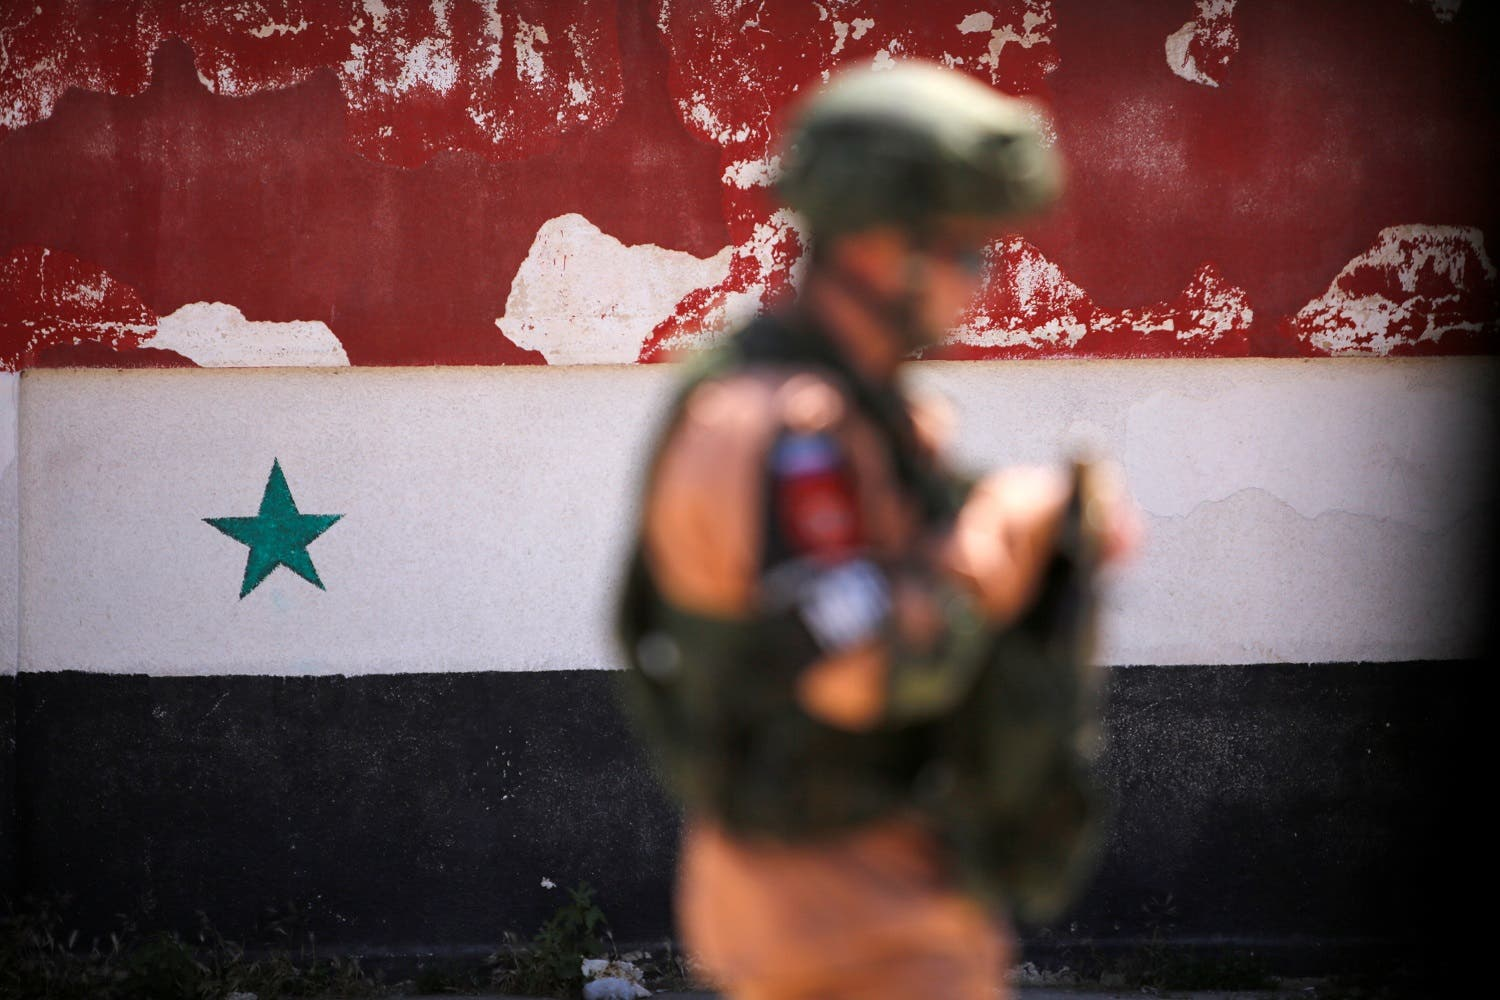 A Russian soldier stands guard near a Syrian national flag, Syria May 21, 2017. (Reuters)